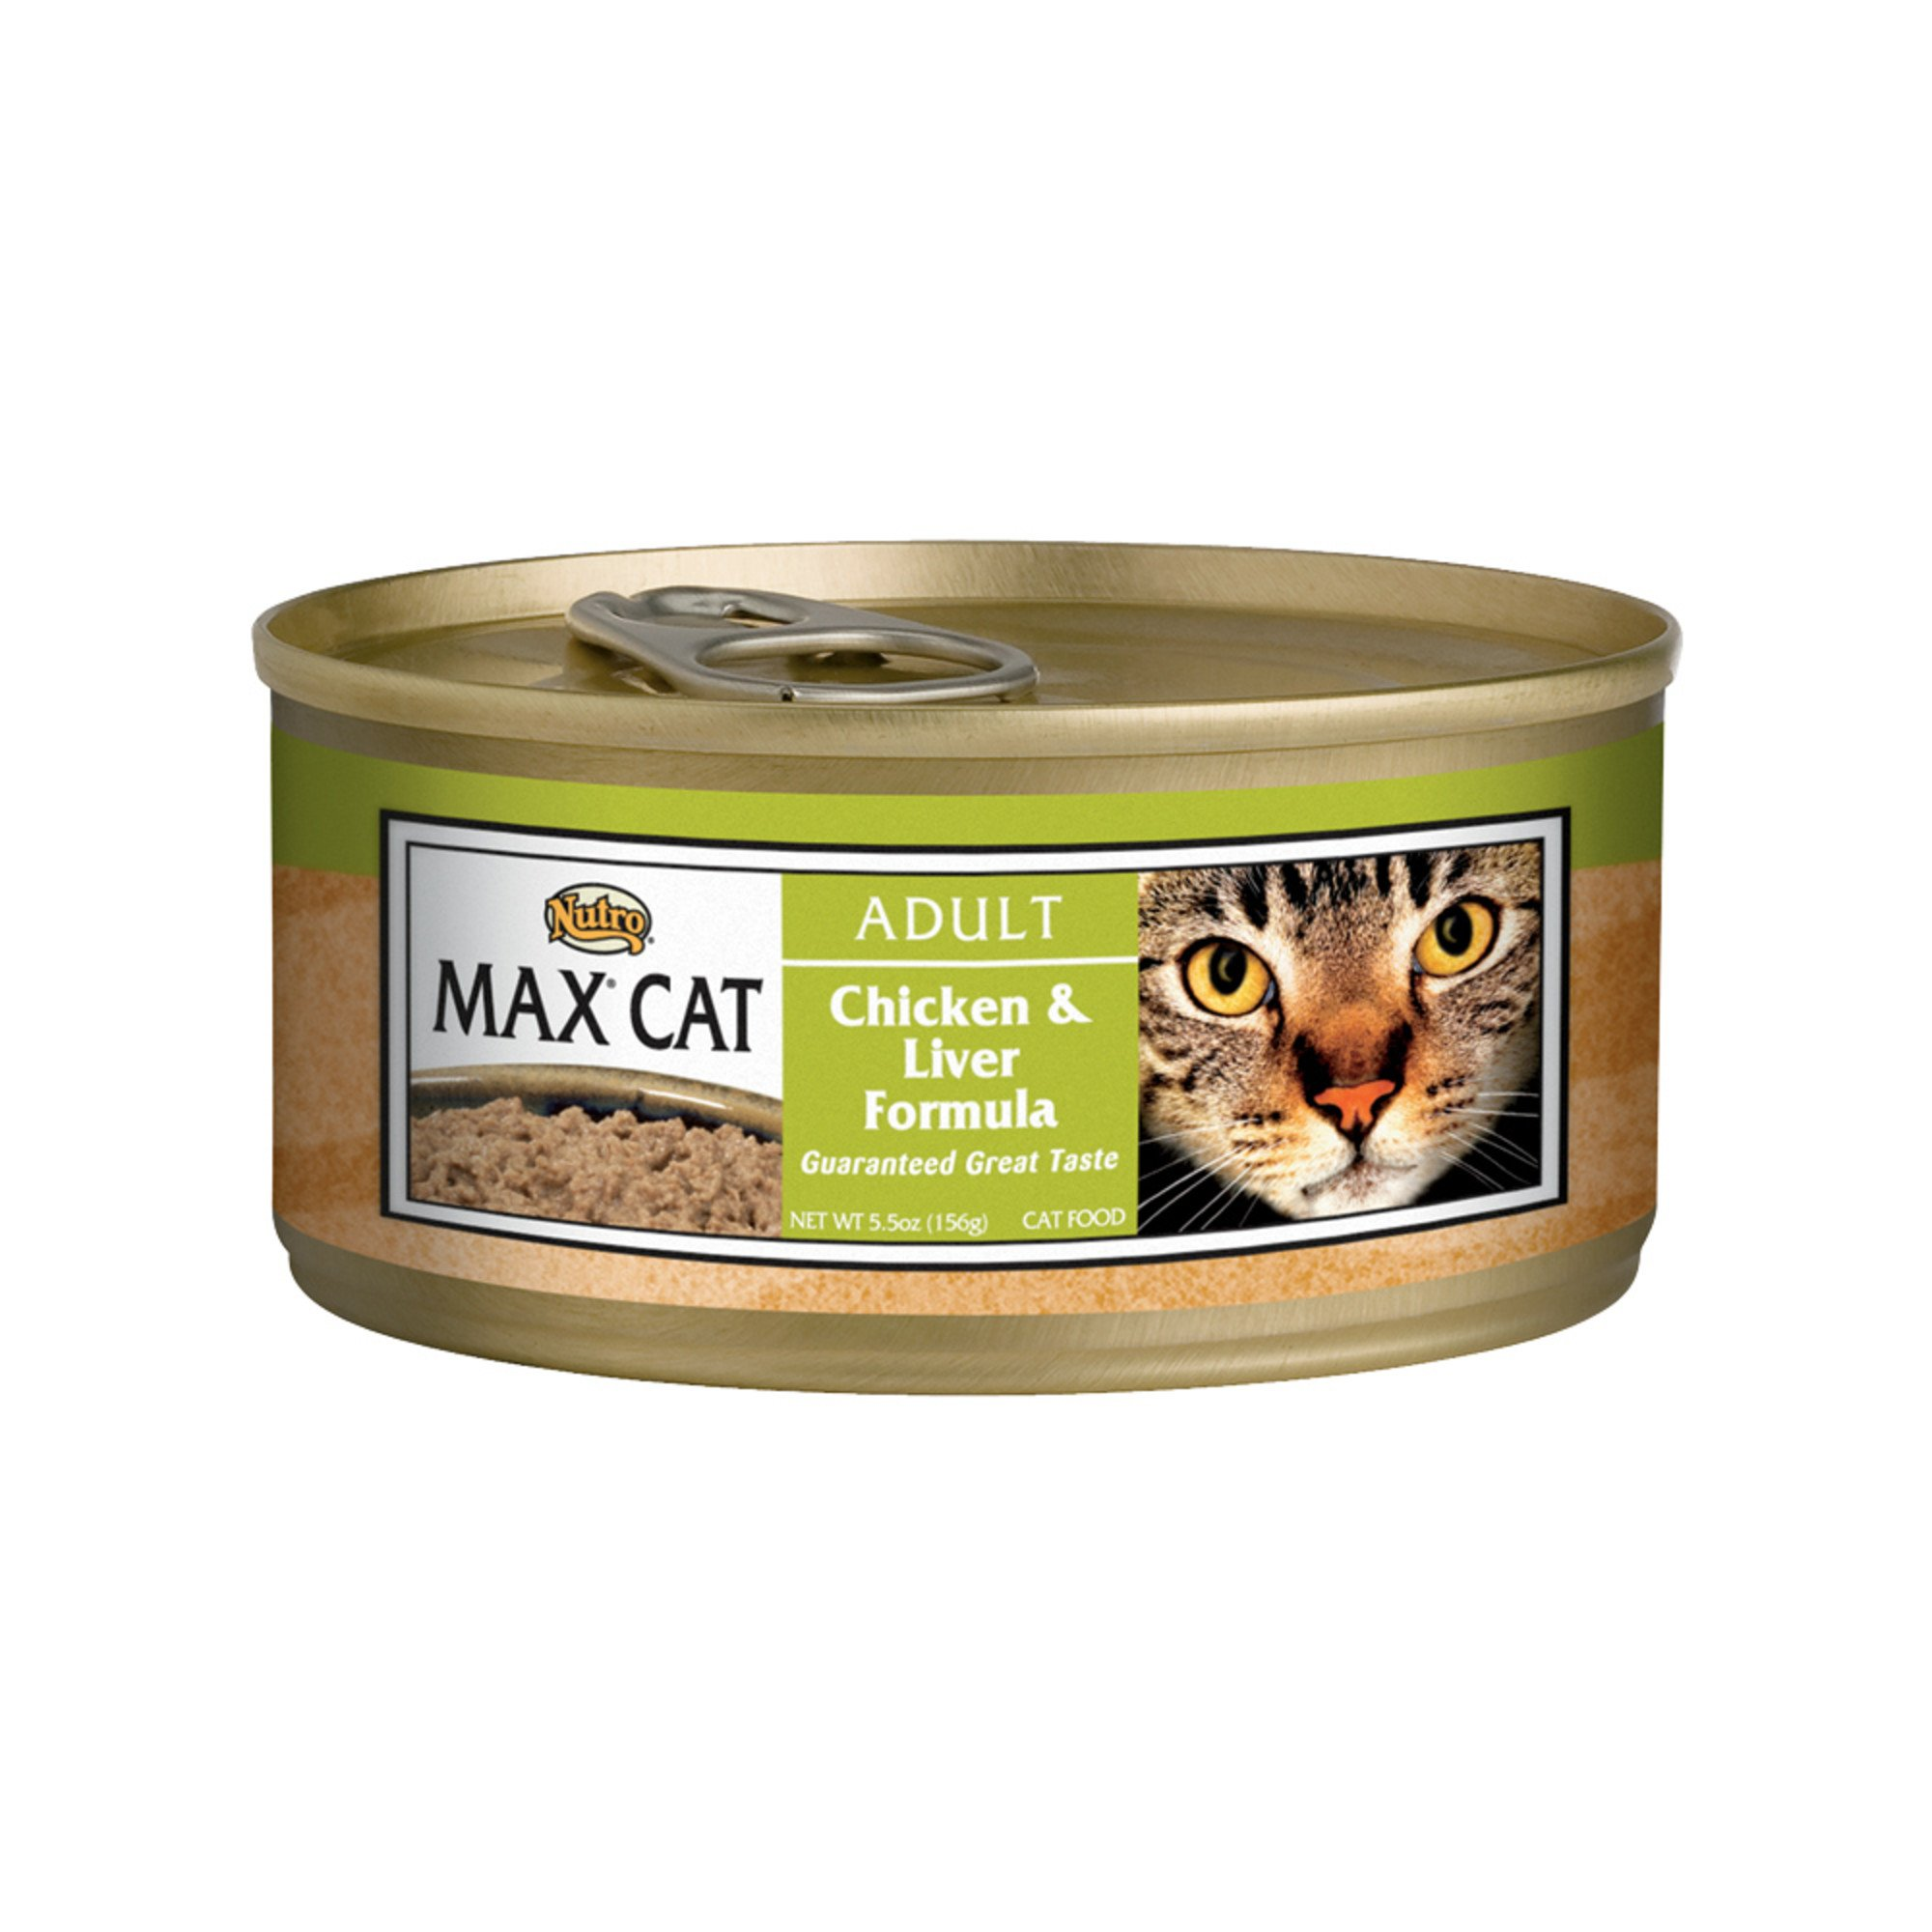 Nutro Max Canned Cat Food